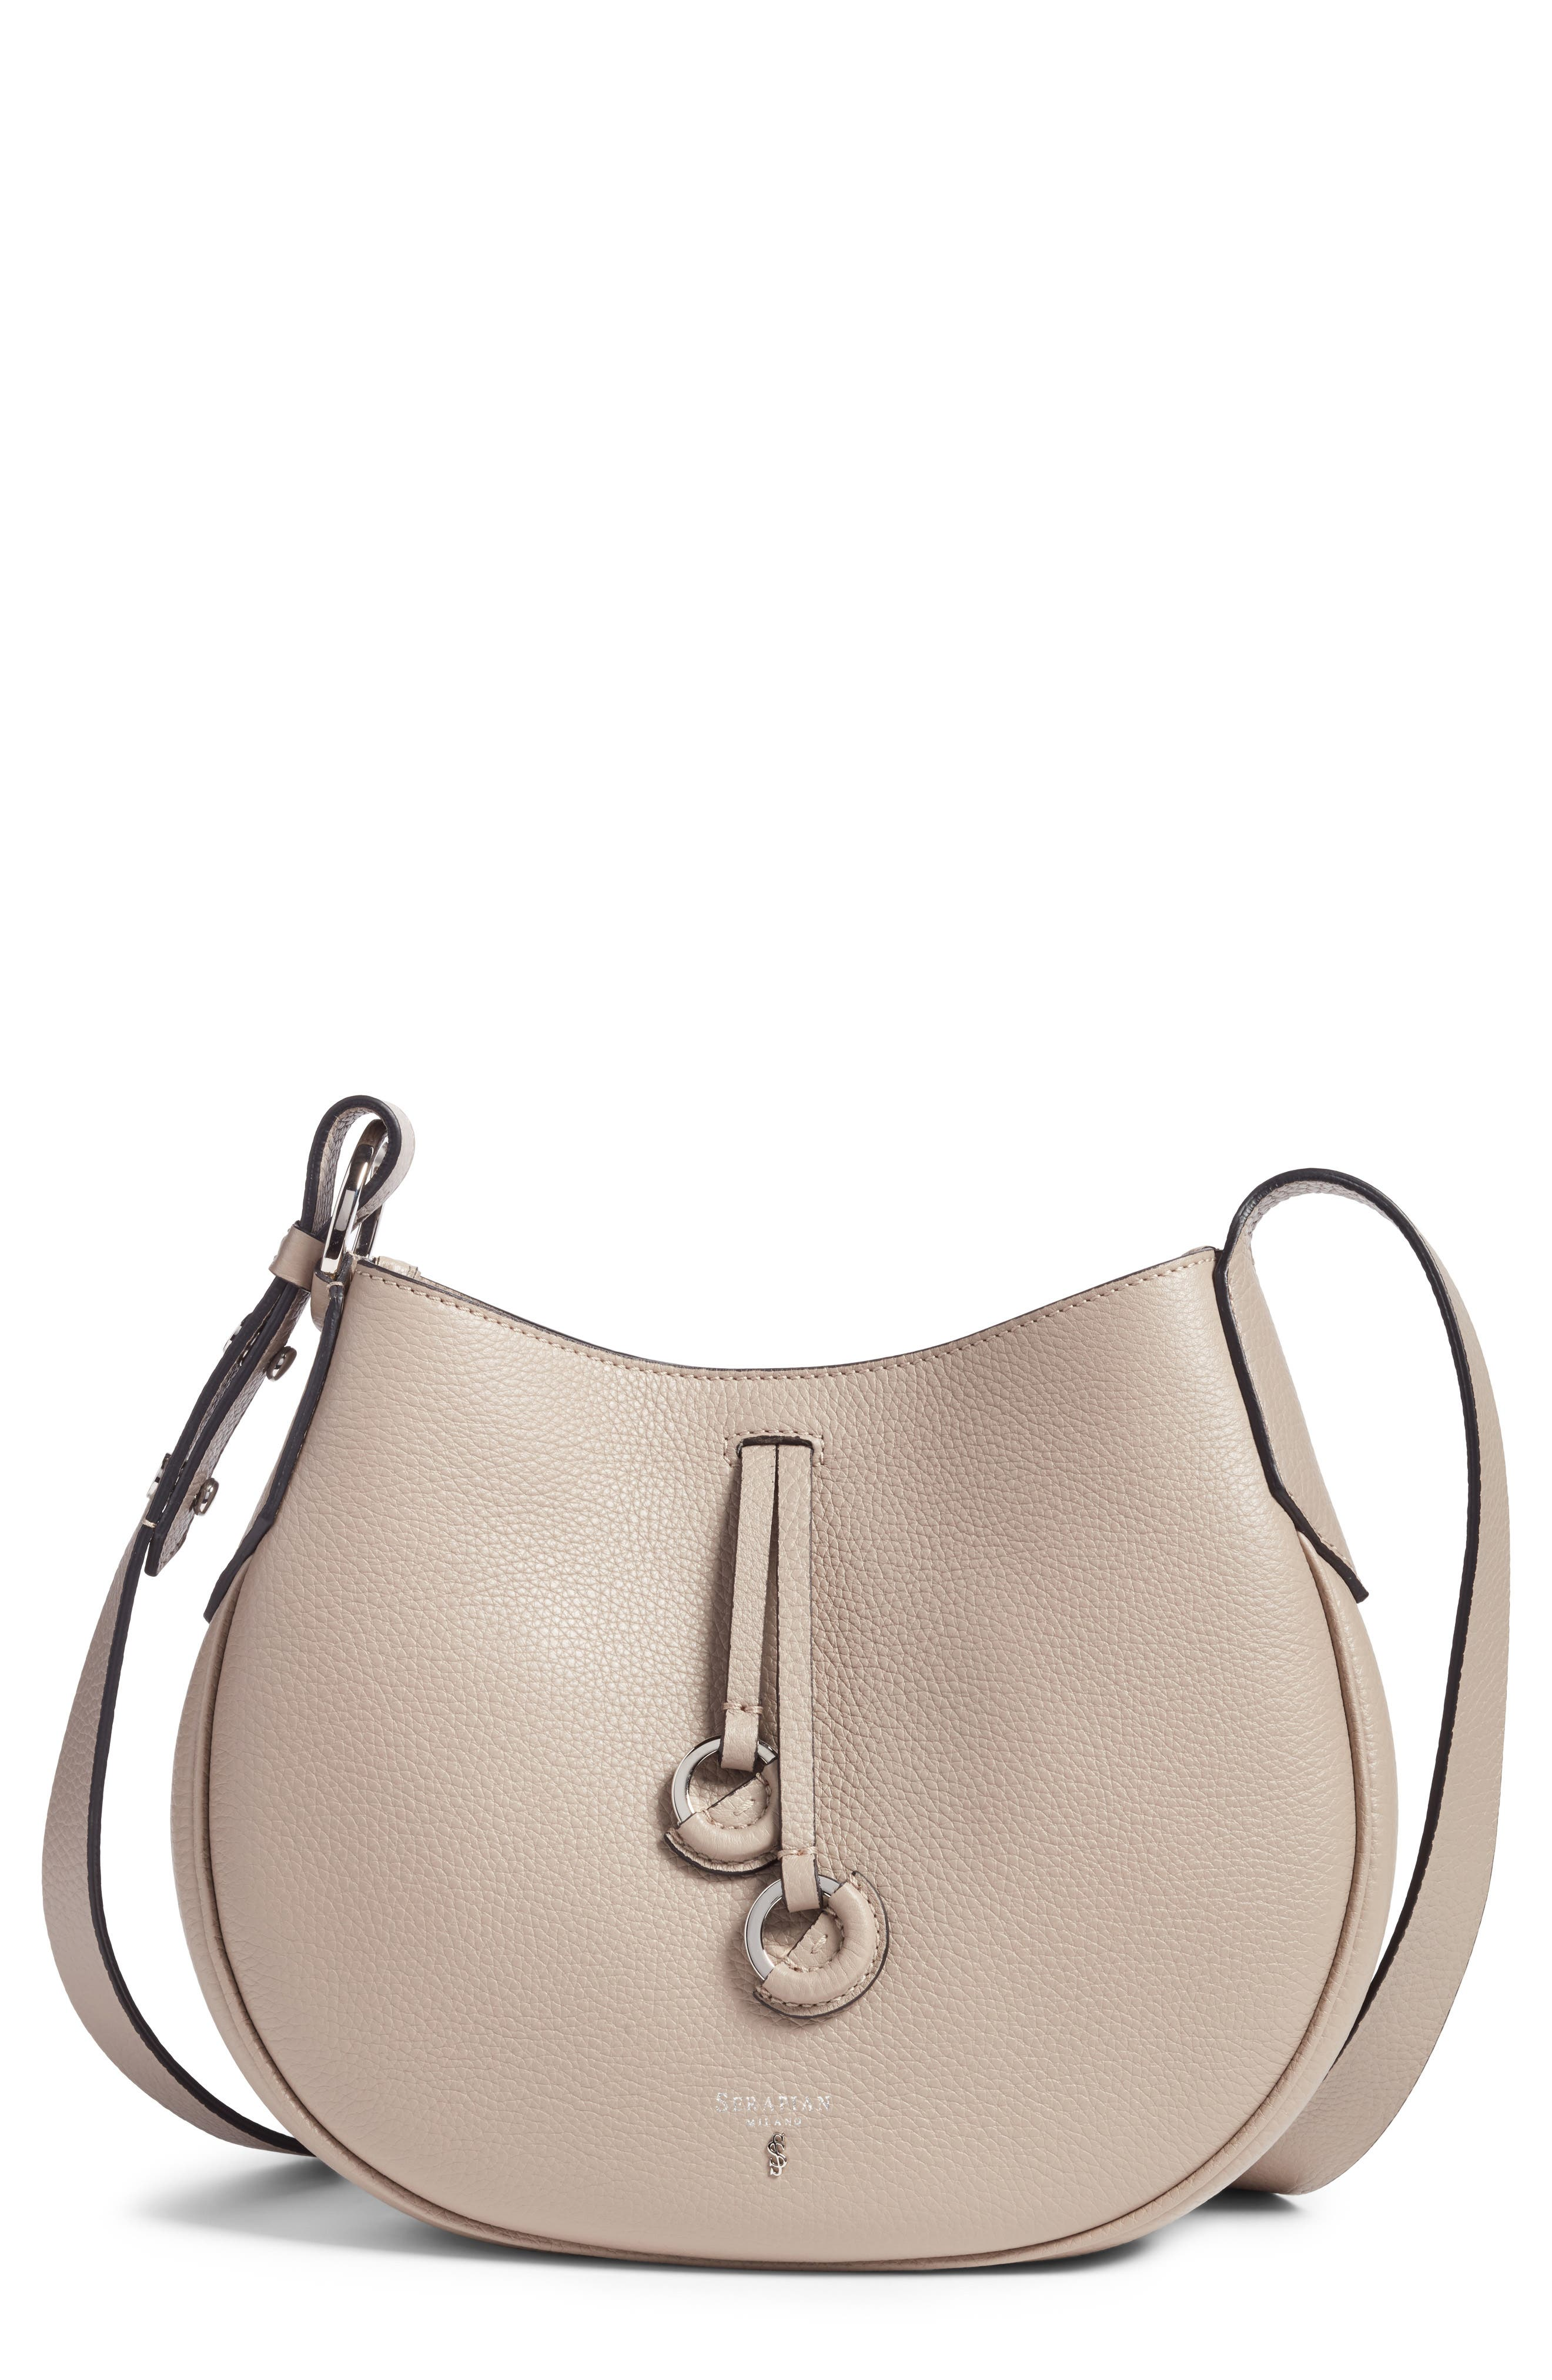 Serapian Milano Small Maura Cachemire Crossbody Bag